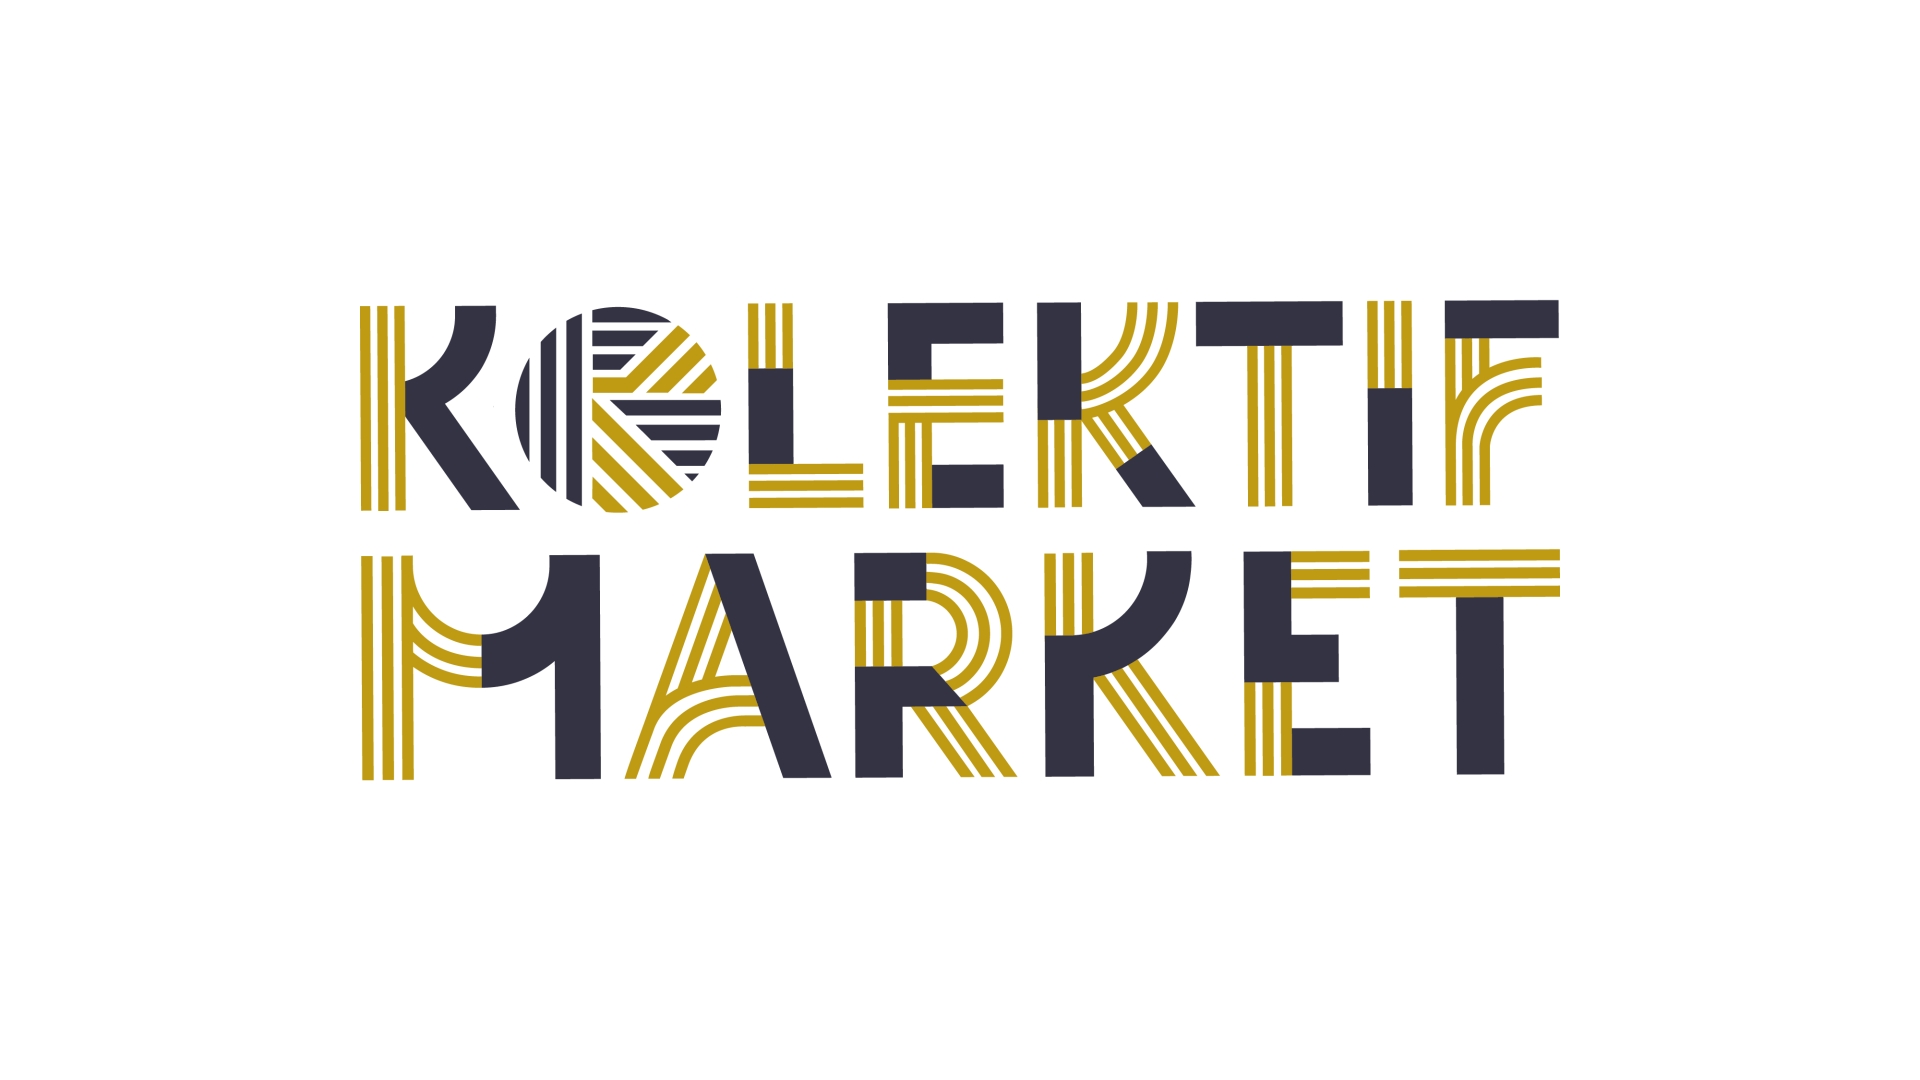 KolektifMarket-graphic-03